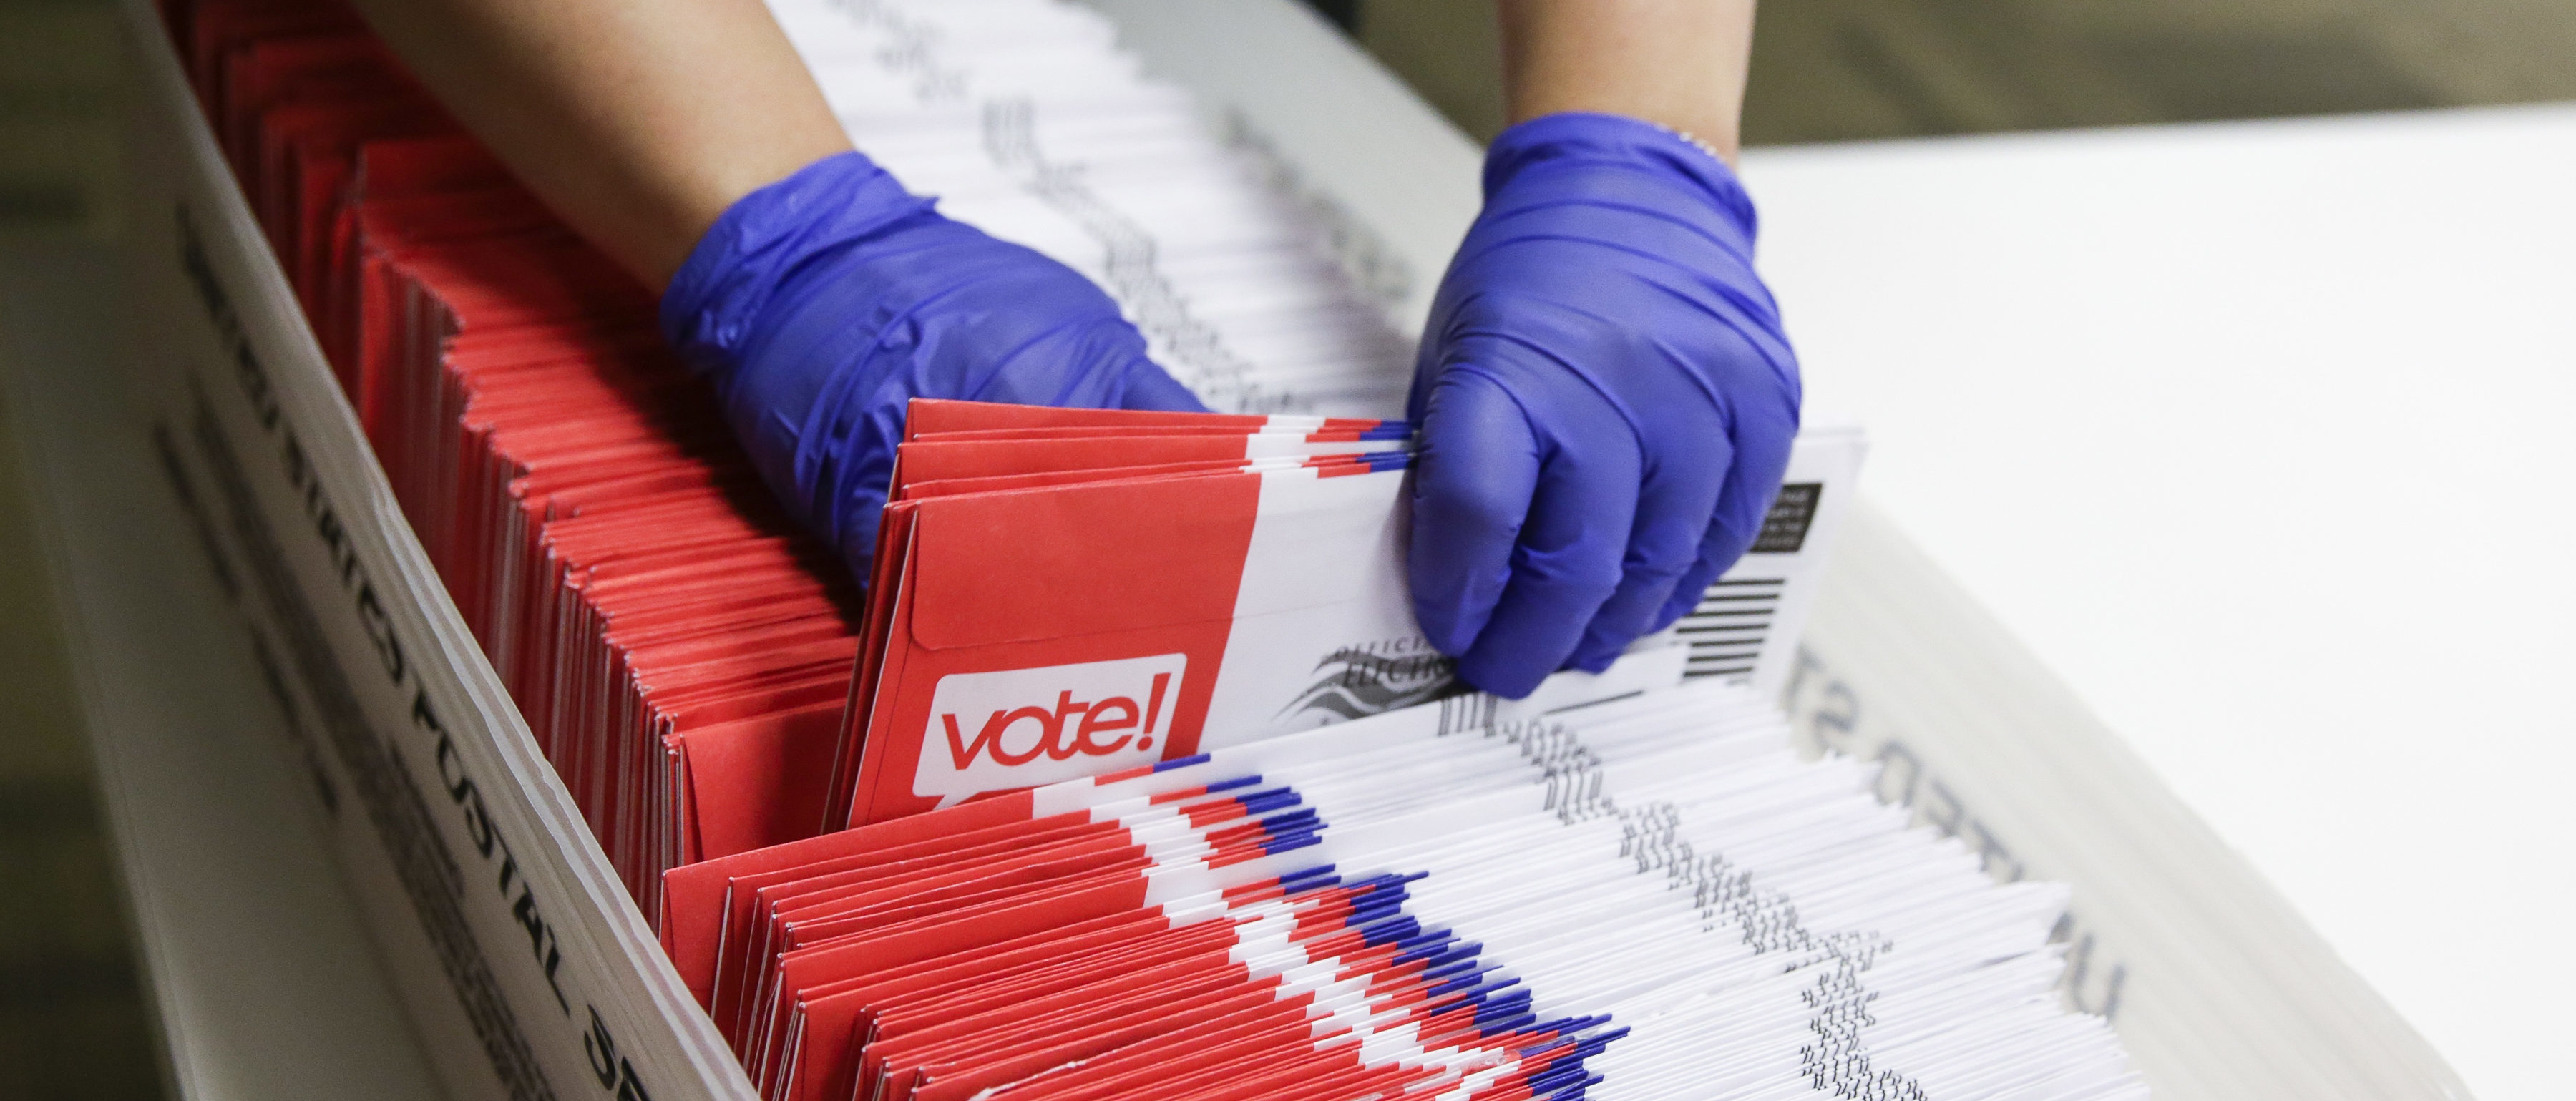 Here's What You Need To Know About Ballot Harvesting And Democrats' Push To Expand Mail-In Voting